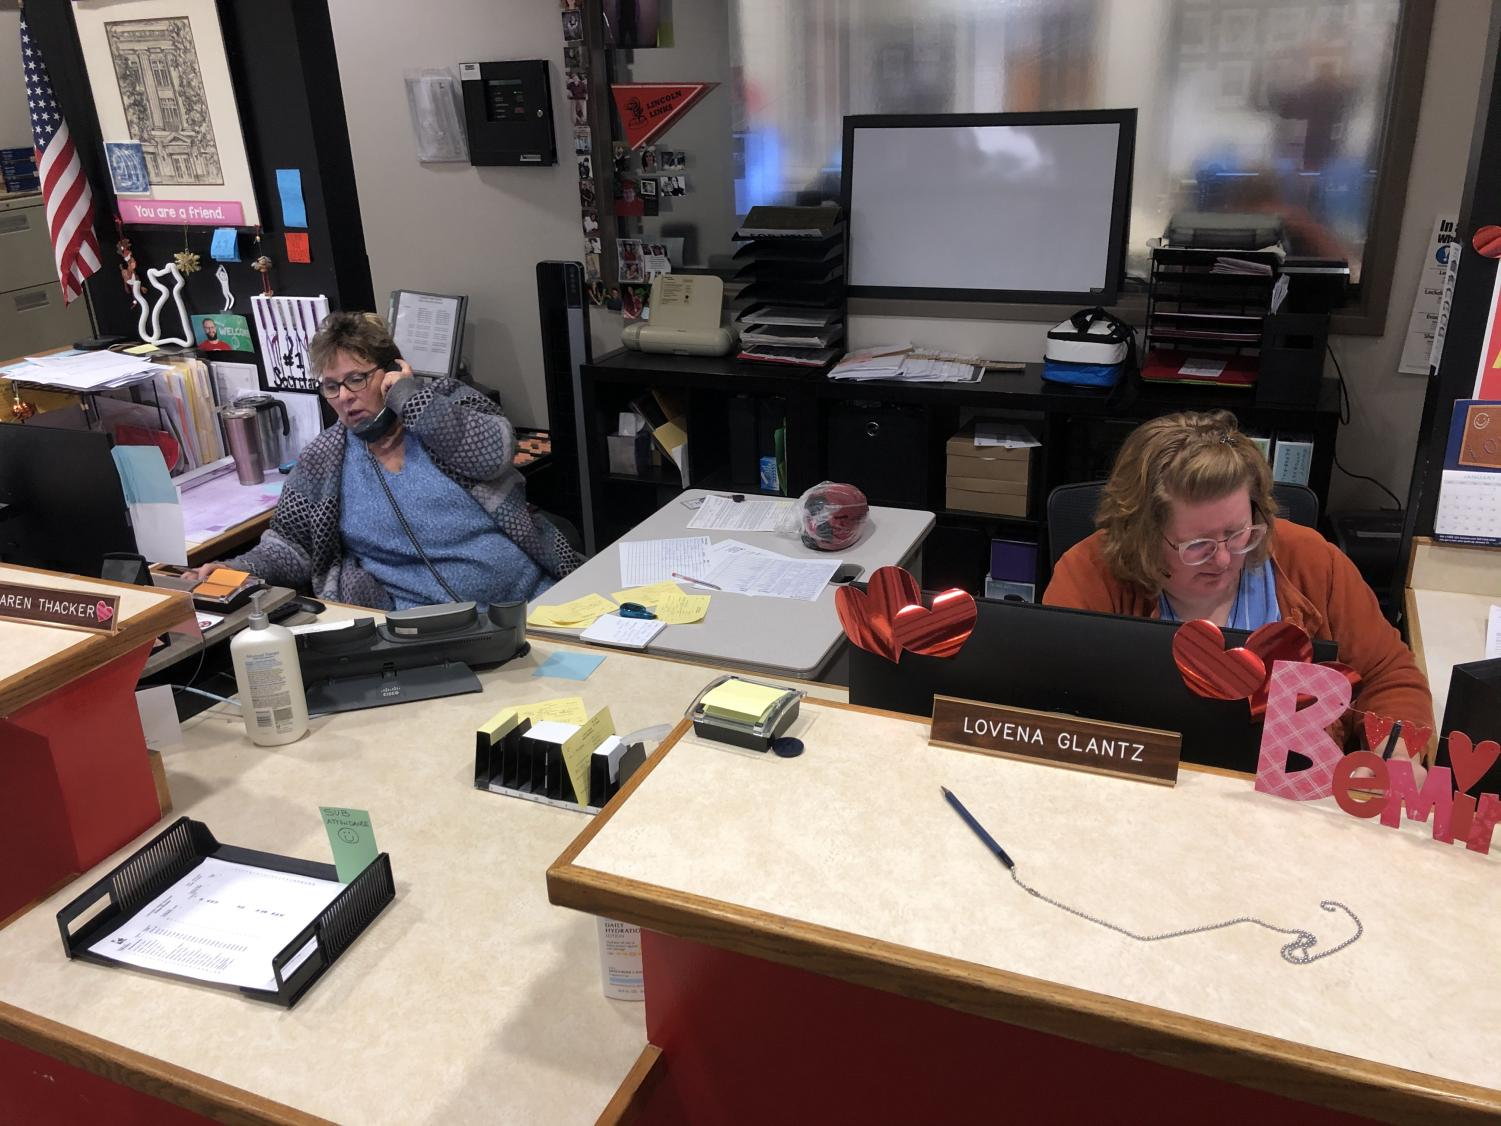 Attendance Office Secretaries Karen Thacker (left) and Lovena Glantz (right) take phone calls Wednesday morning, January 22, 2020, from parents excusing students due to weather conditions. Attendance was down significantly after an early-morning snow storm made street conditions hazardous.